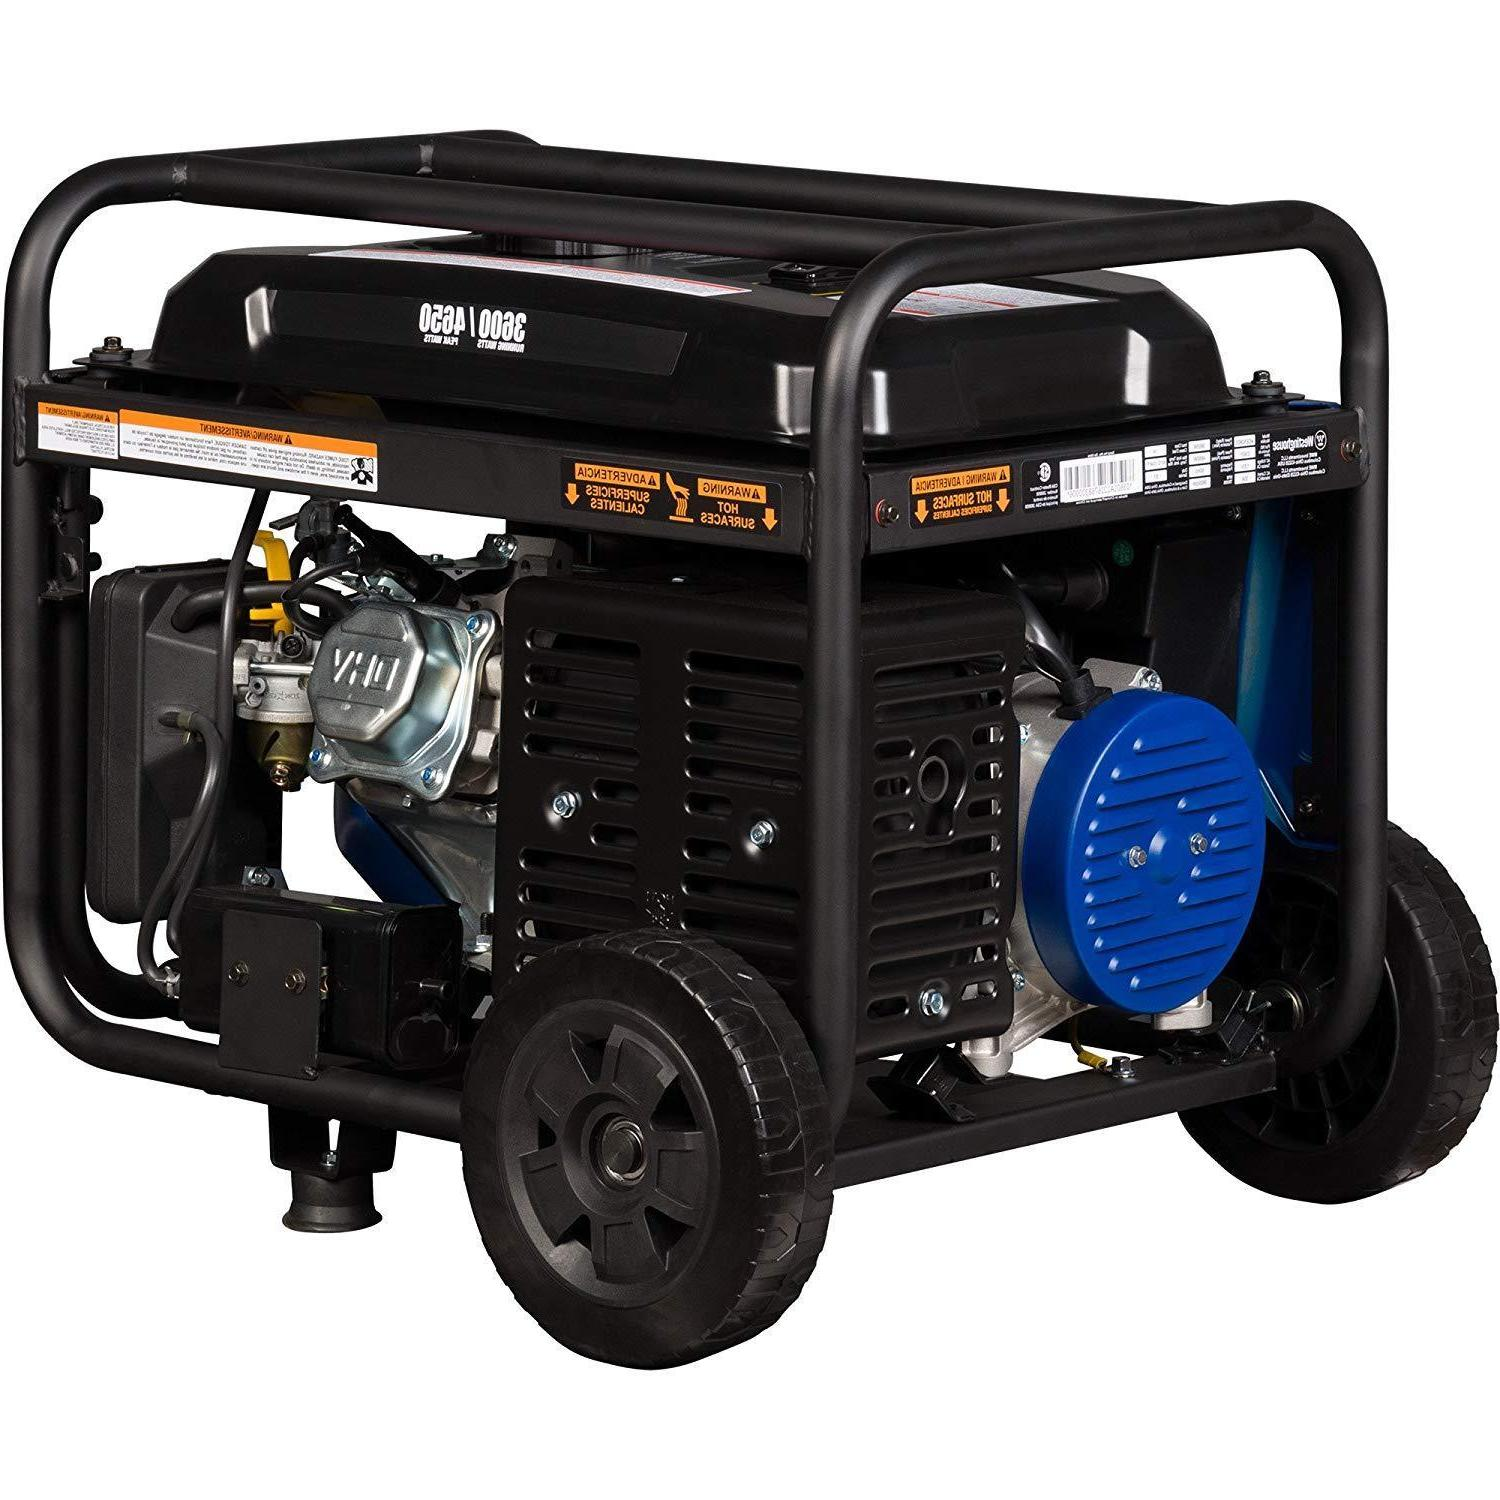 Portable Generator WGen3600 Rated & Peak